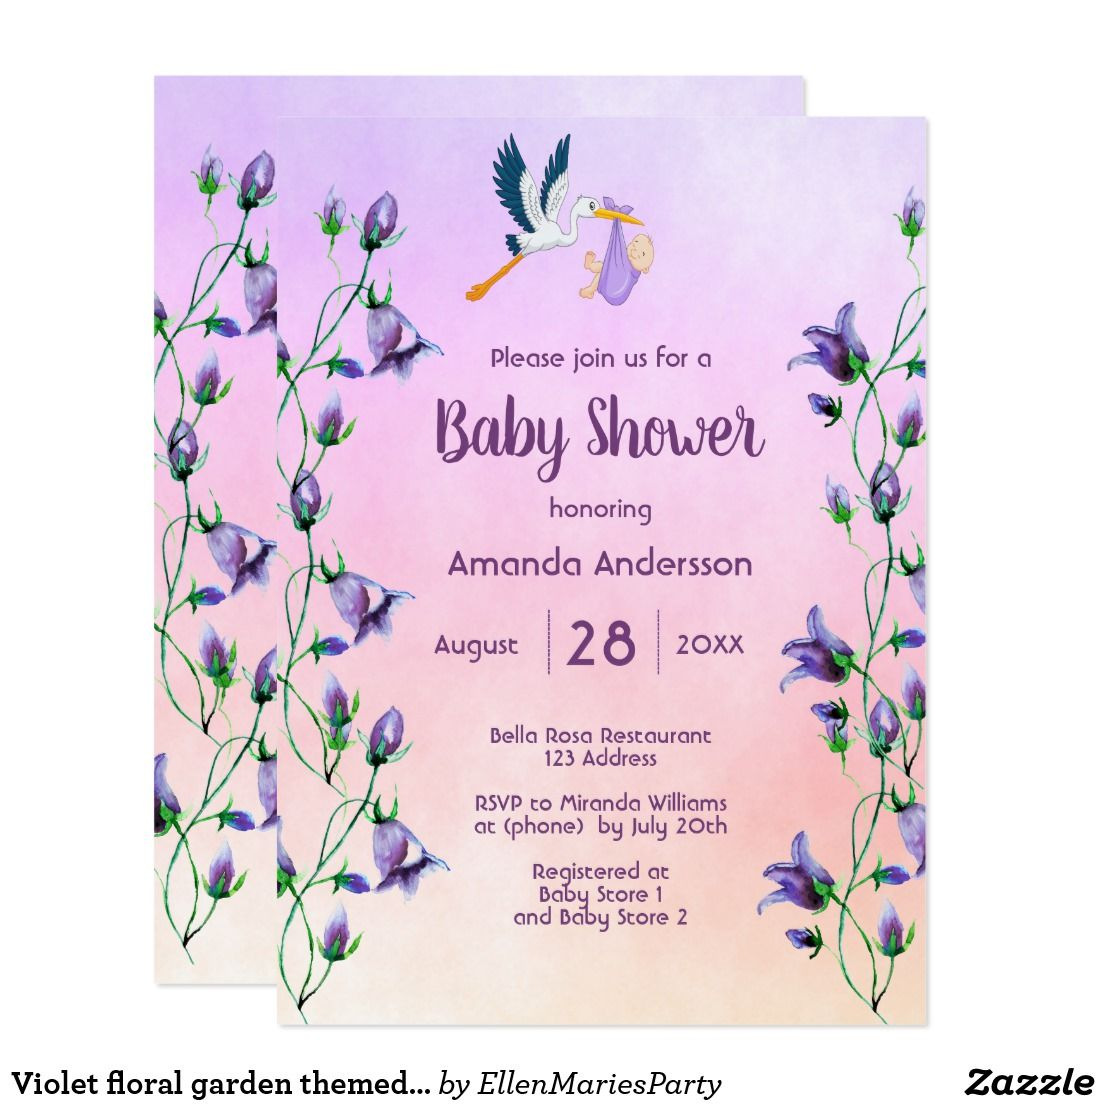 Baby Shower Invitation Letter Impressive Violet Floral Garden Themed Baby Shower Invitation  Babies And Baby .